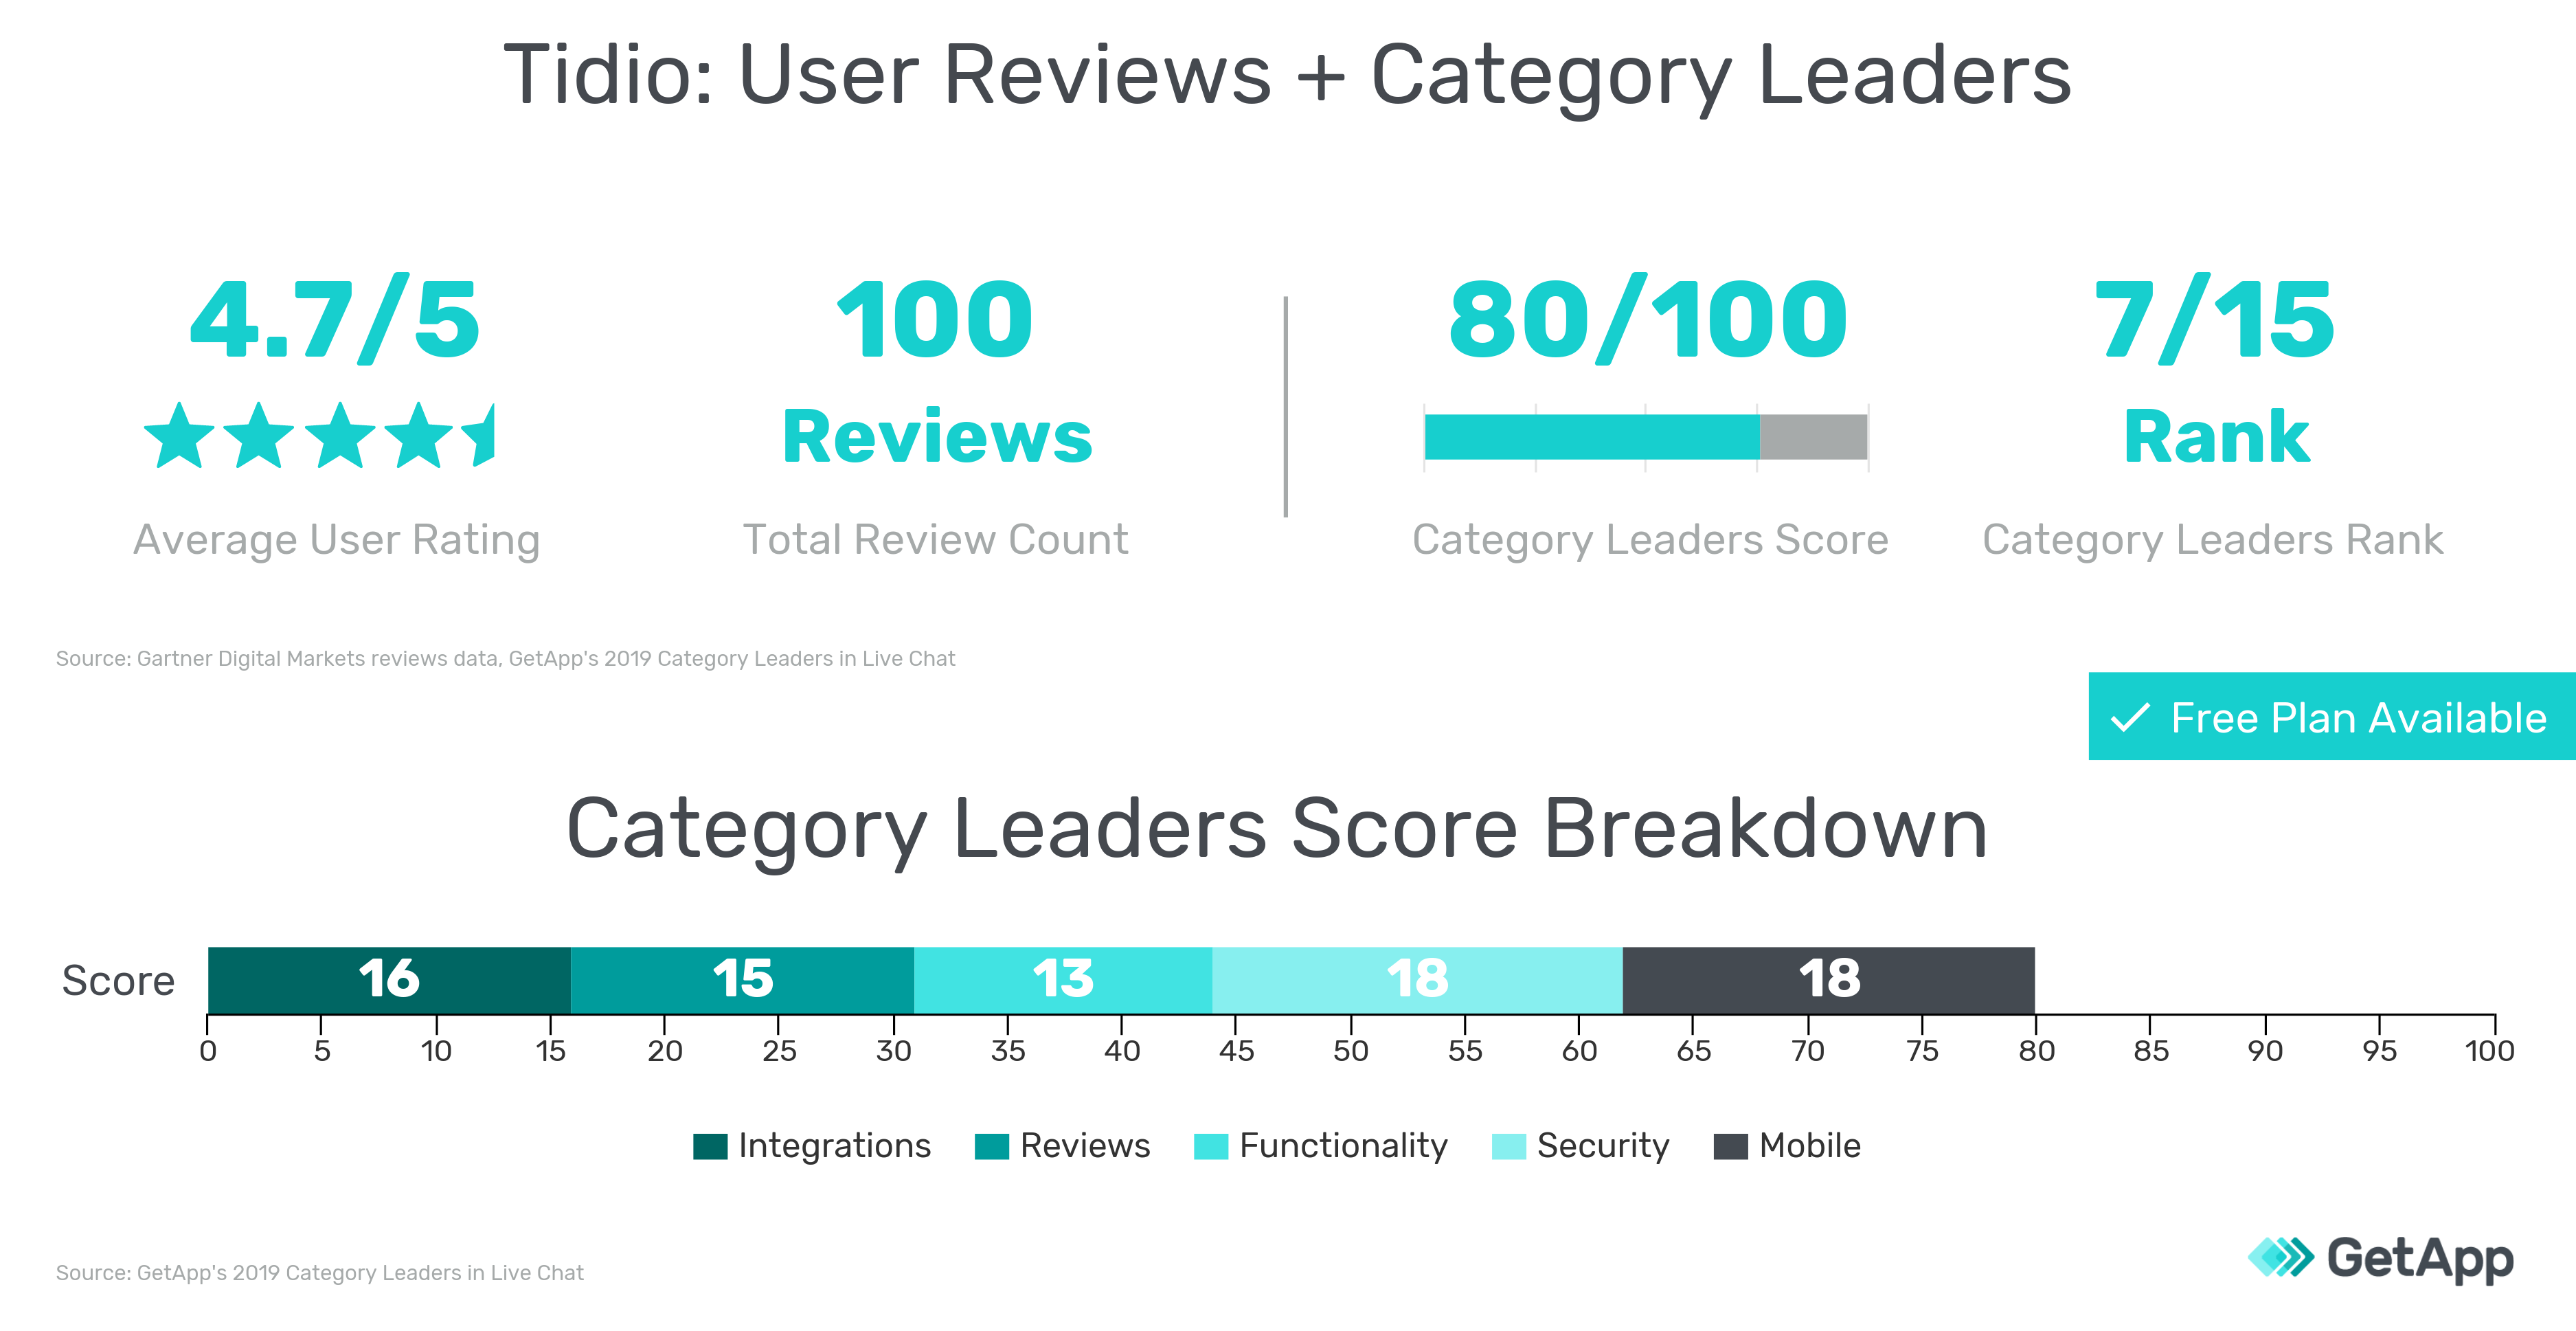 User reviews information and 2019 Category Leaders scores for Tidio graphic